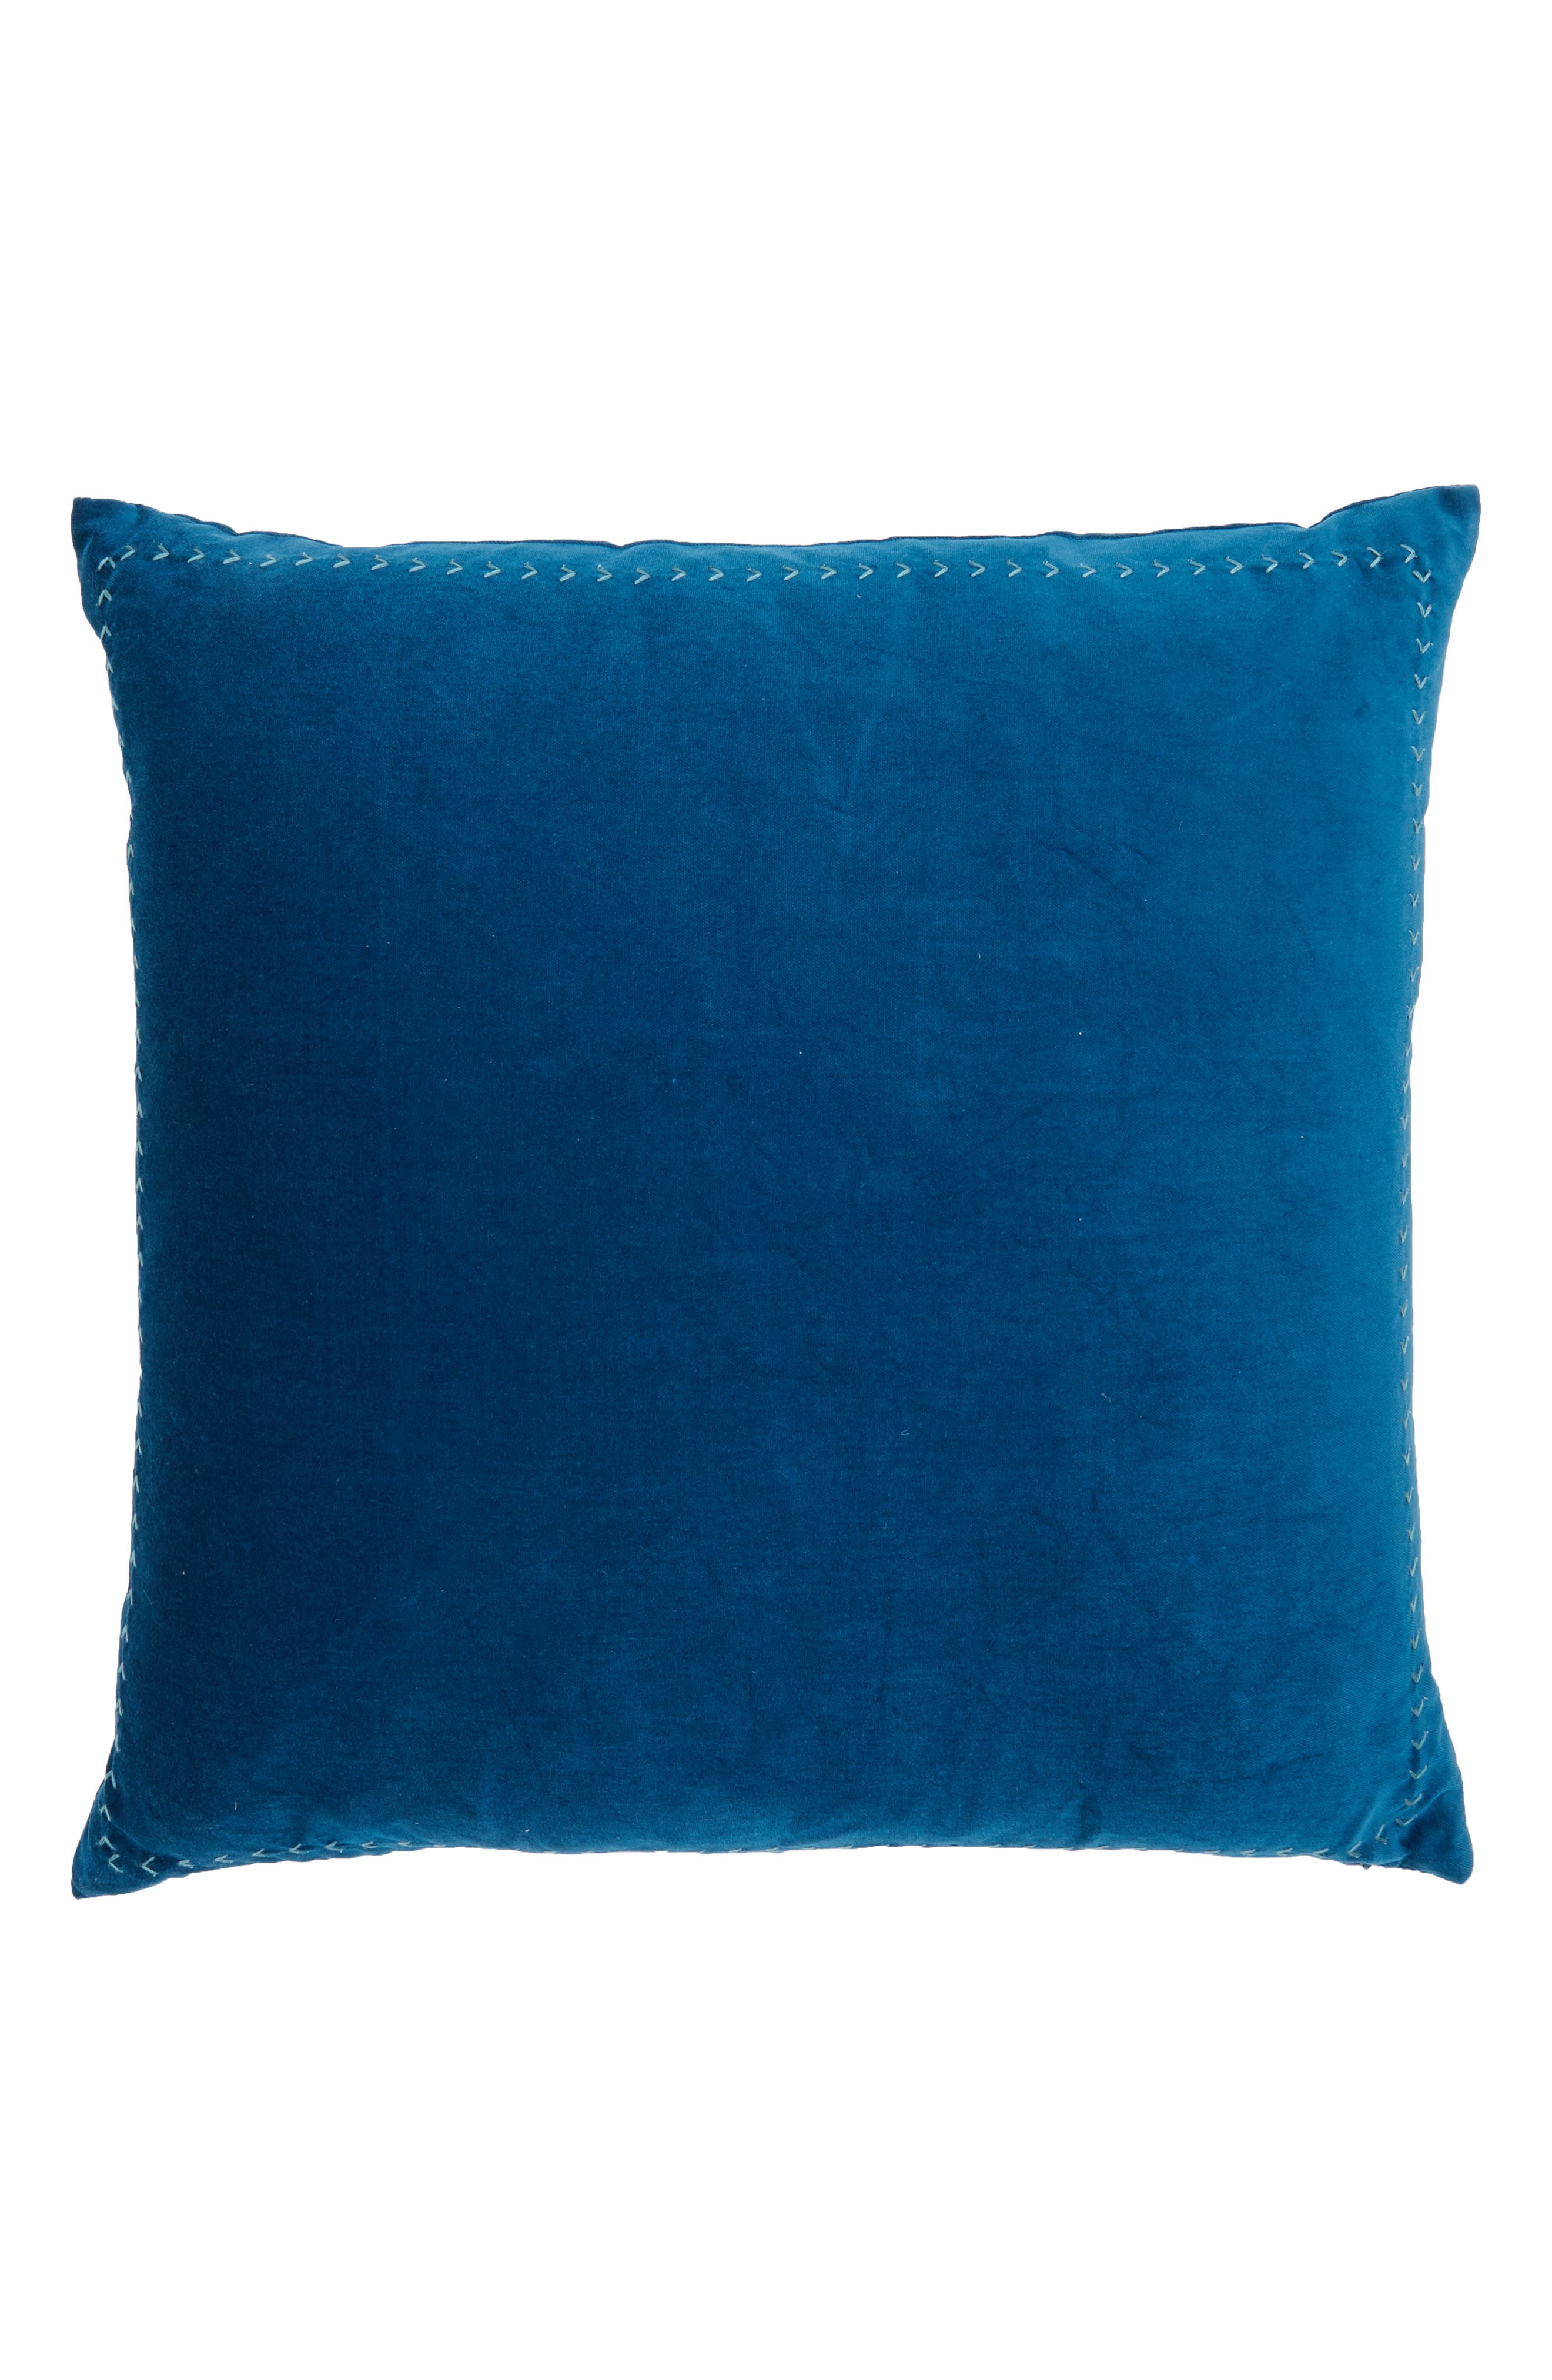 Velvet Accent Pillow,                             Alternate thumbnail 3, color,